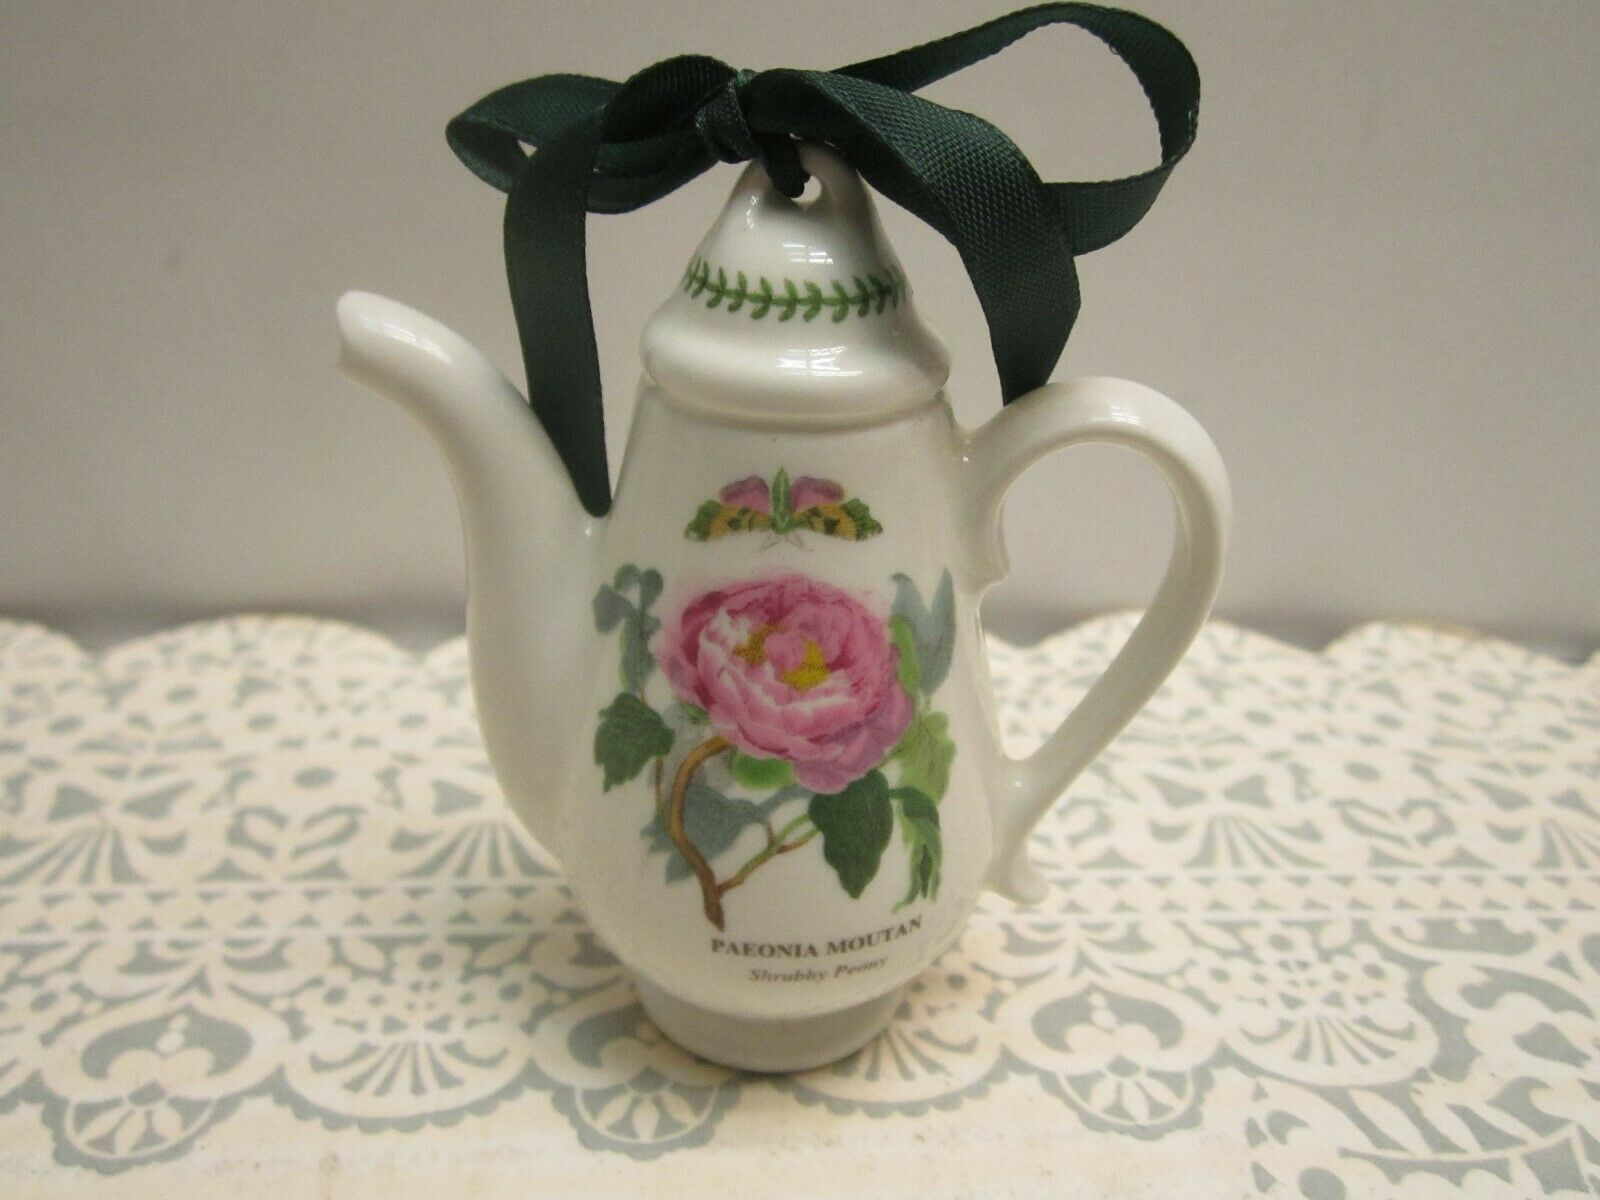 Portmeirion Botanic Garden Christmas Mini Coffepot Ornament